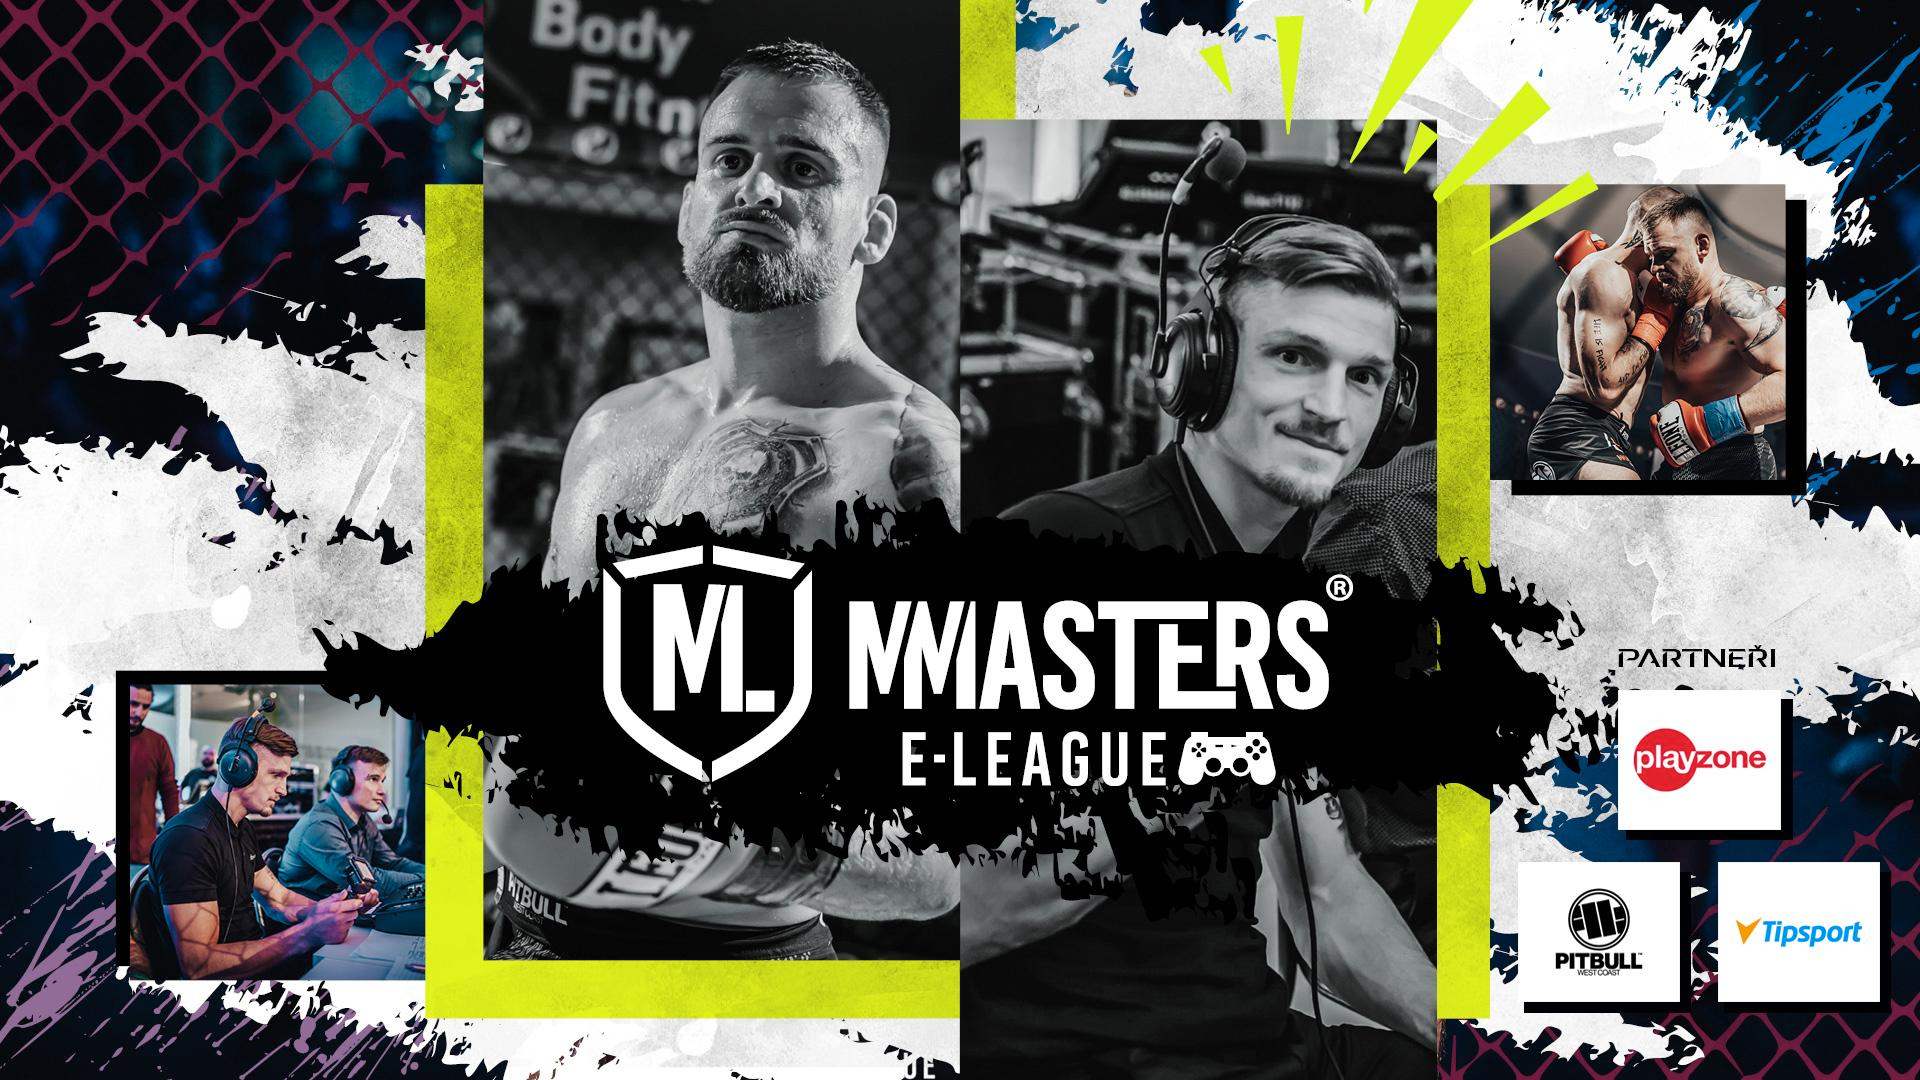 mmasters-eleague-banner